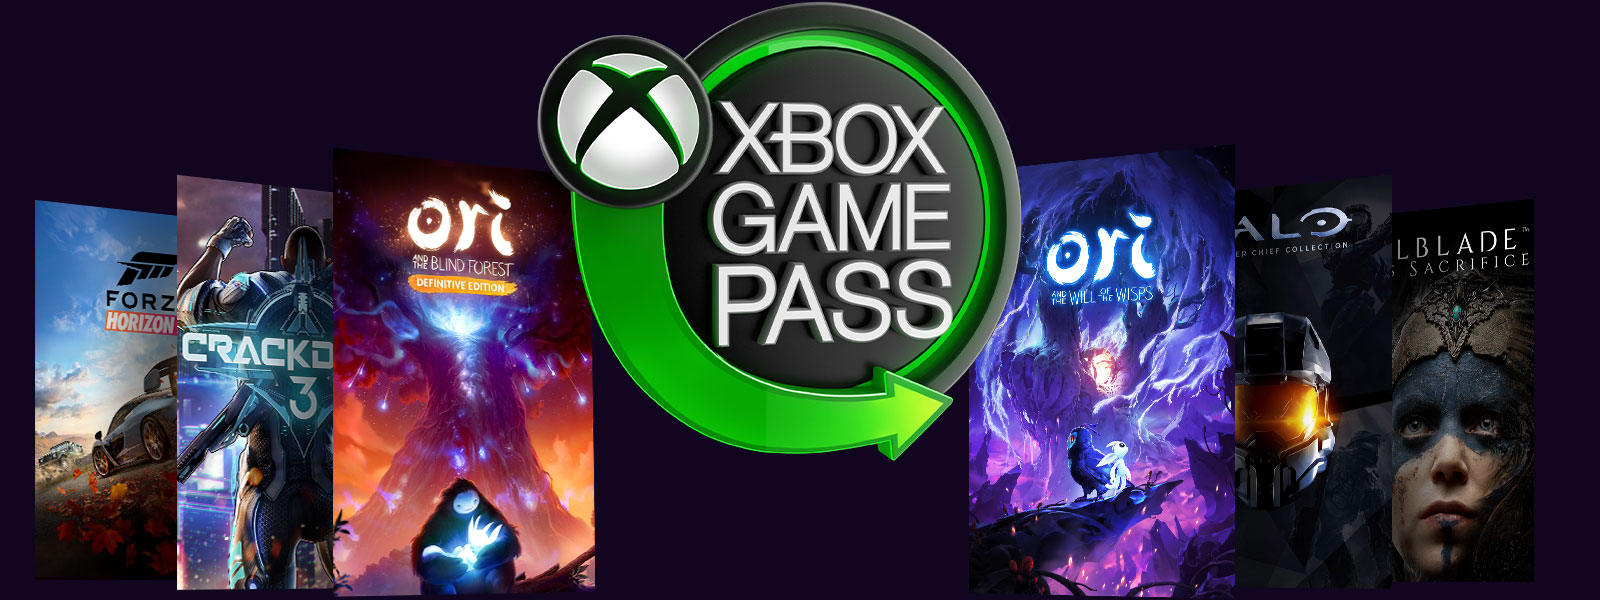 Xbox Game Pass 로고가 있는 Ori and the Will of the Wisps, Ori and the Blind Forest, Crackdown 3, Halo, Forza Horizon 4, 그리고 Hellblade 박스 사진